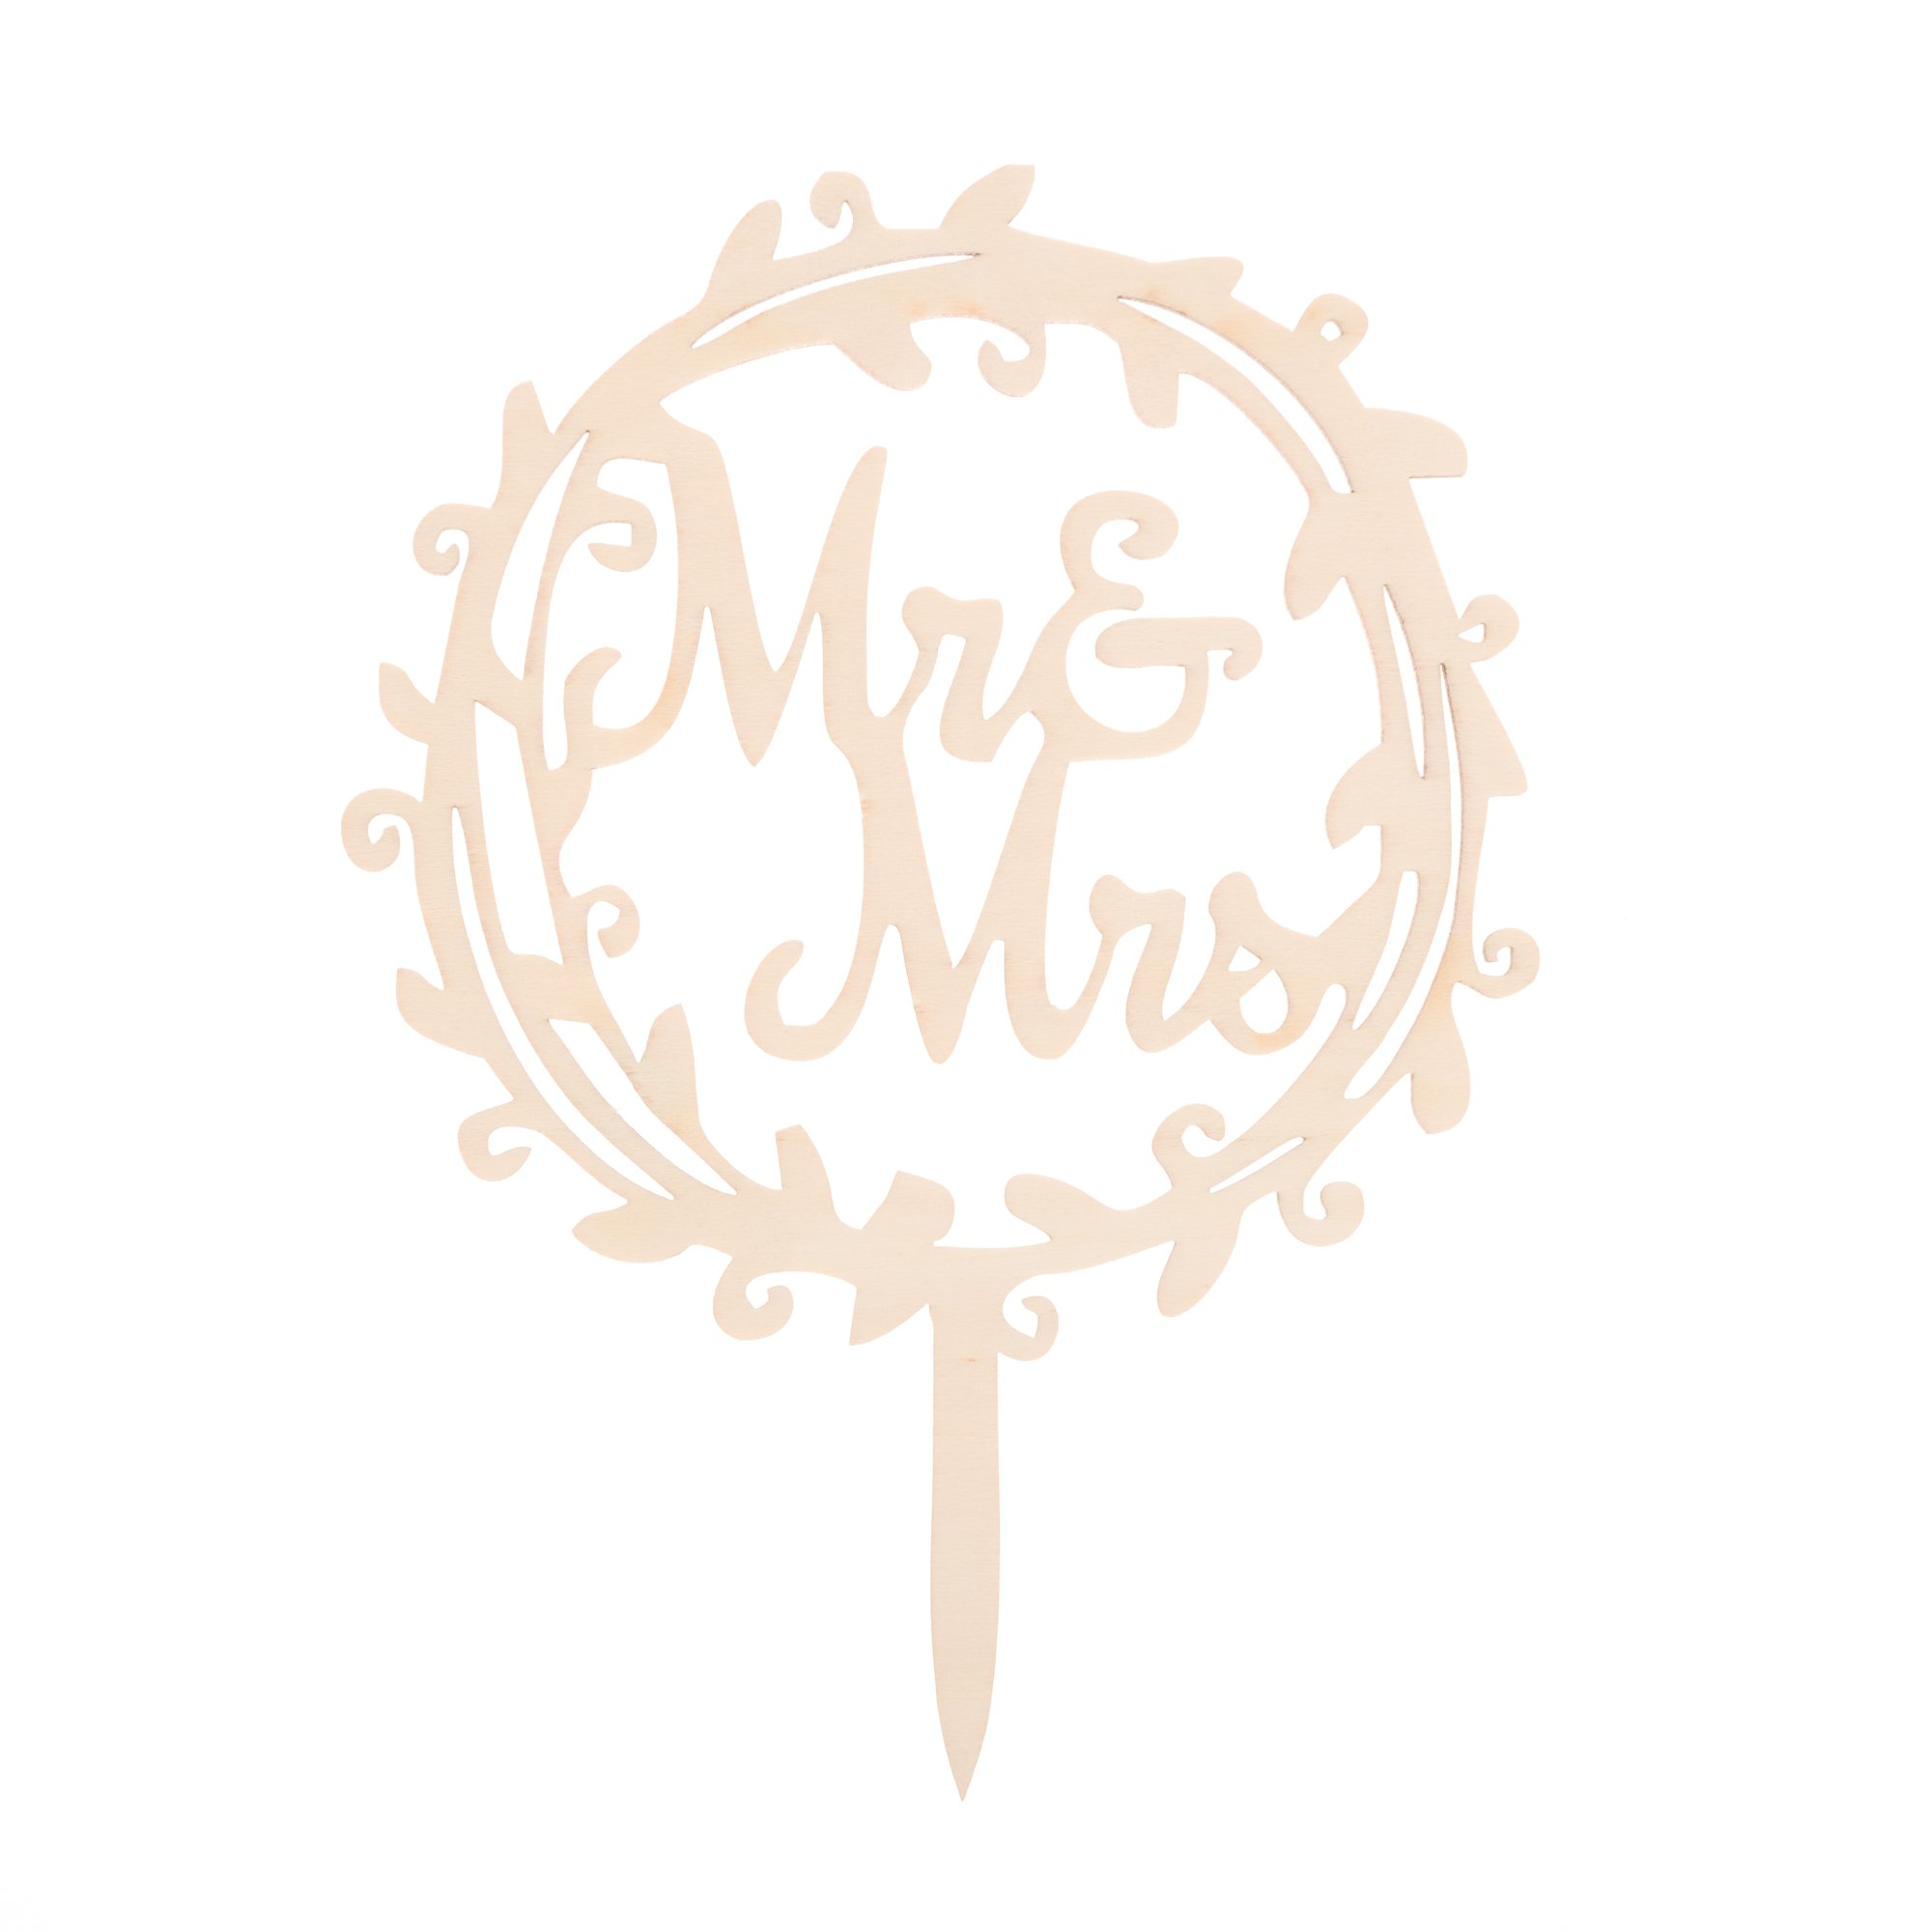 Ella Celebration Mr & Mrs Wooden Wedding Cake Topper Small 4.5 Inches Rustic Wood Floral Wreath Flowers, Olive Branch (Mr & Mrs Wreath) by Ella Celebration (Image #5)